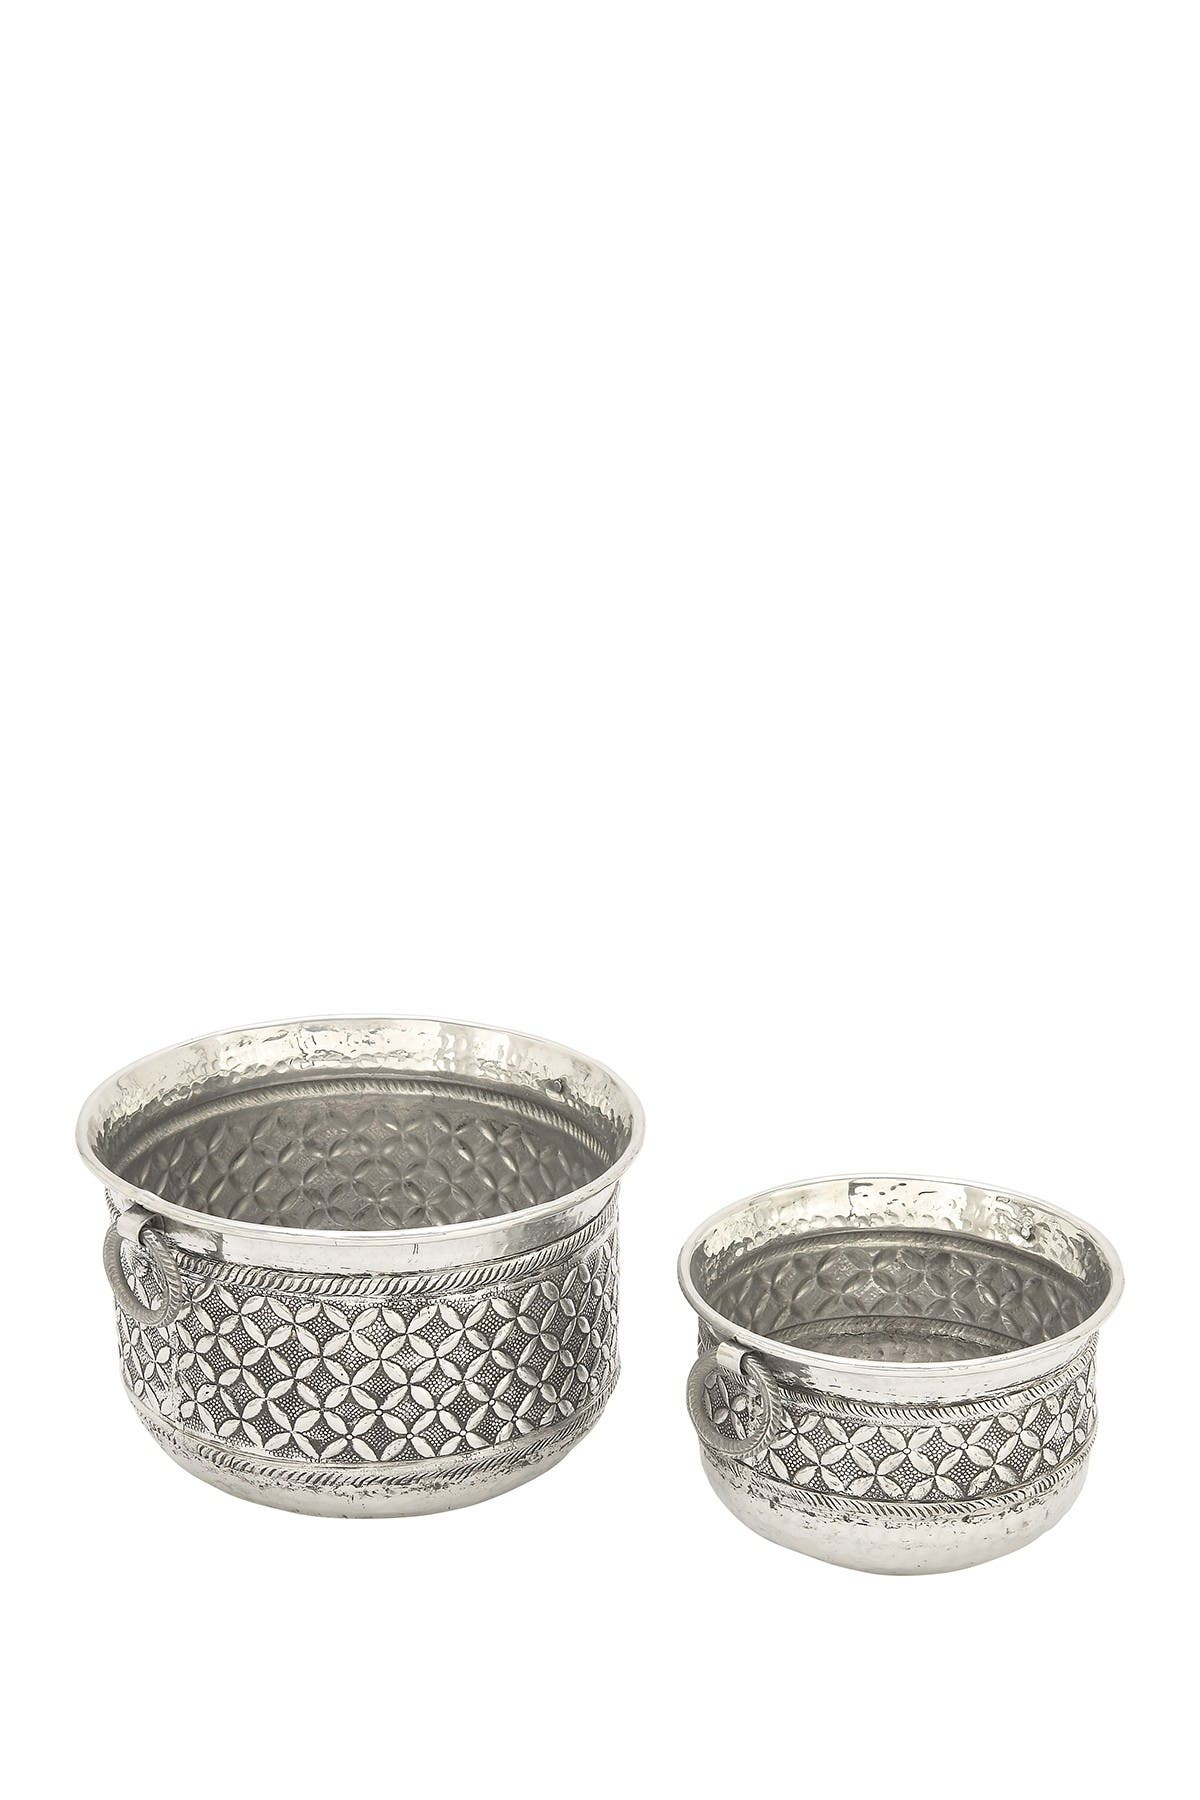 Image of Willow Row Silver Traditional Round Aluminum Planter - Set of 2